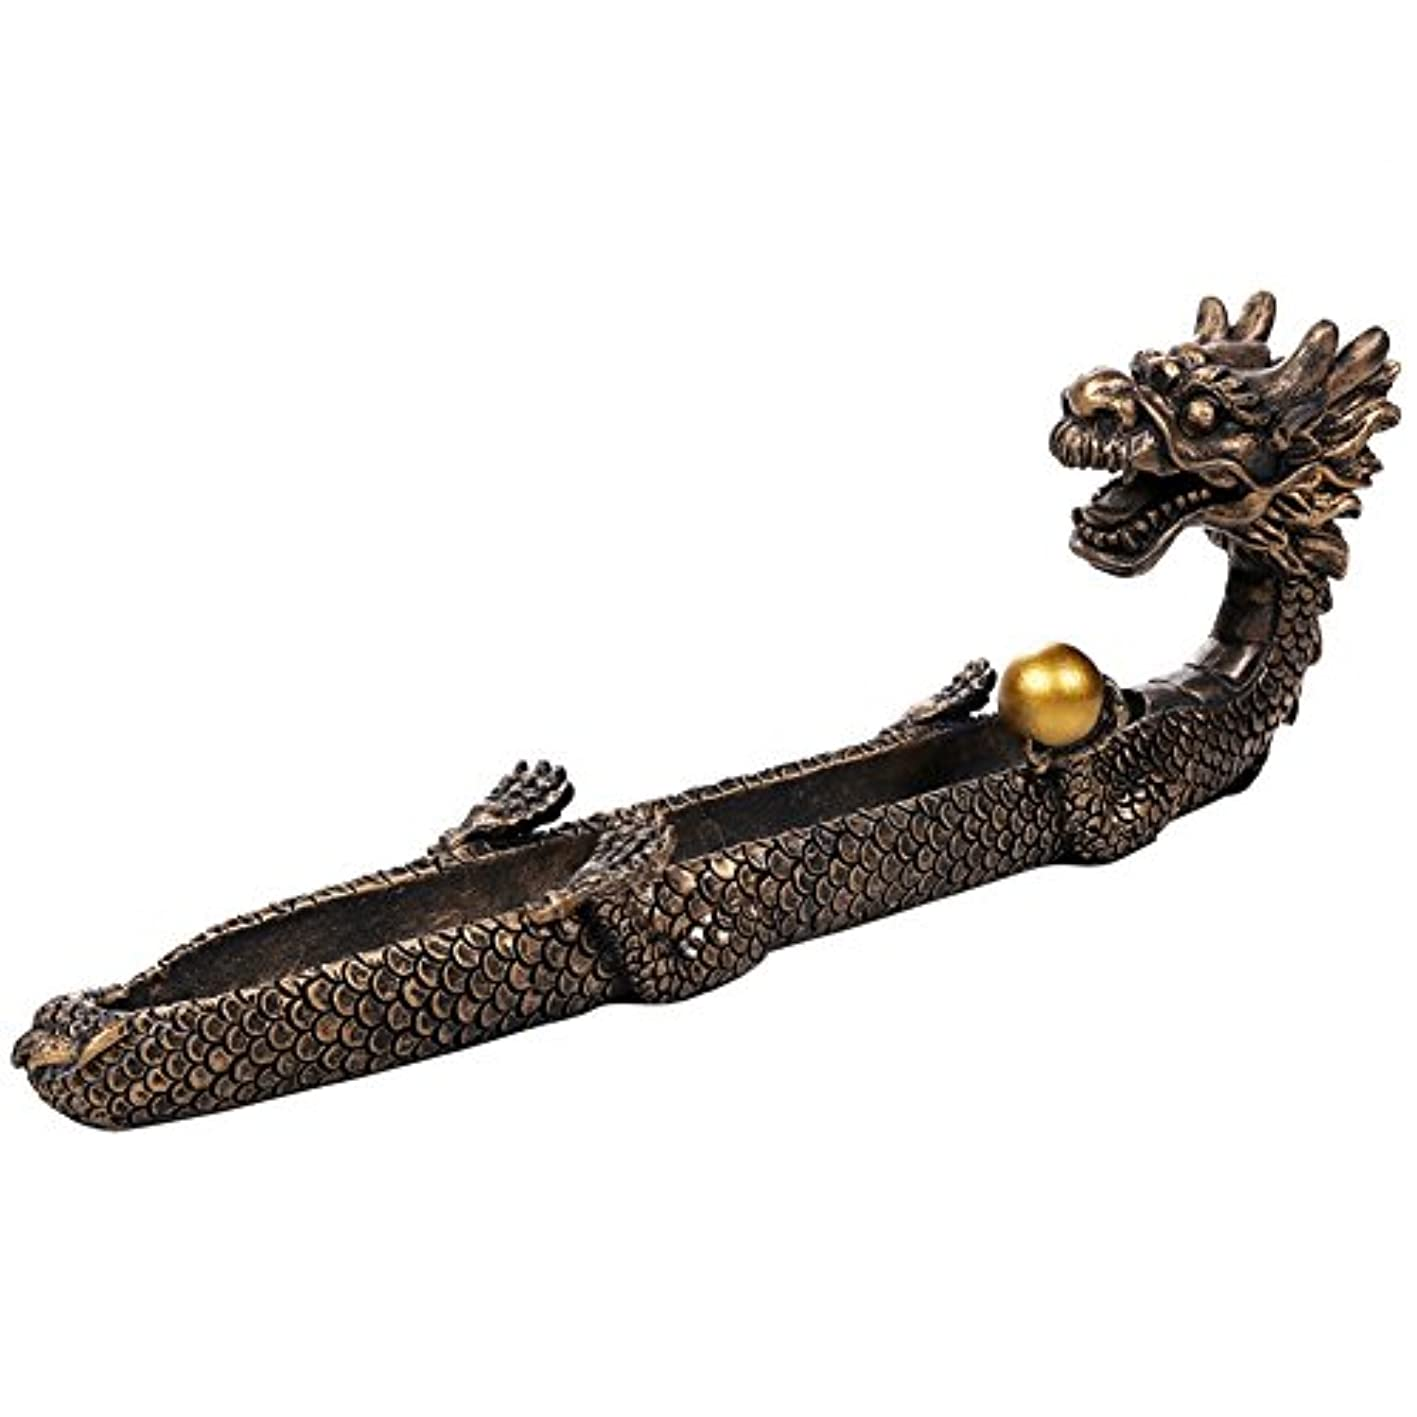 地上のオーナー枯渇Feng Shui Dragon Holding Orb Cast Bronze Stick Incense Burnerホルダー10.25インチL